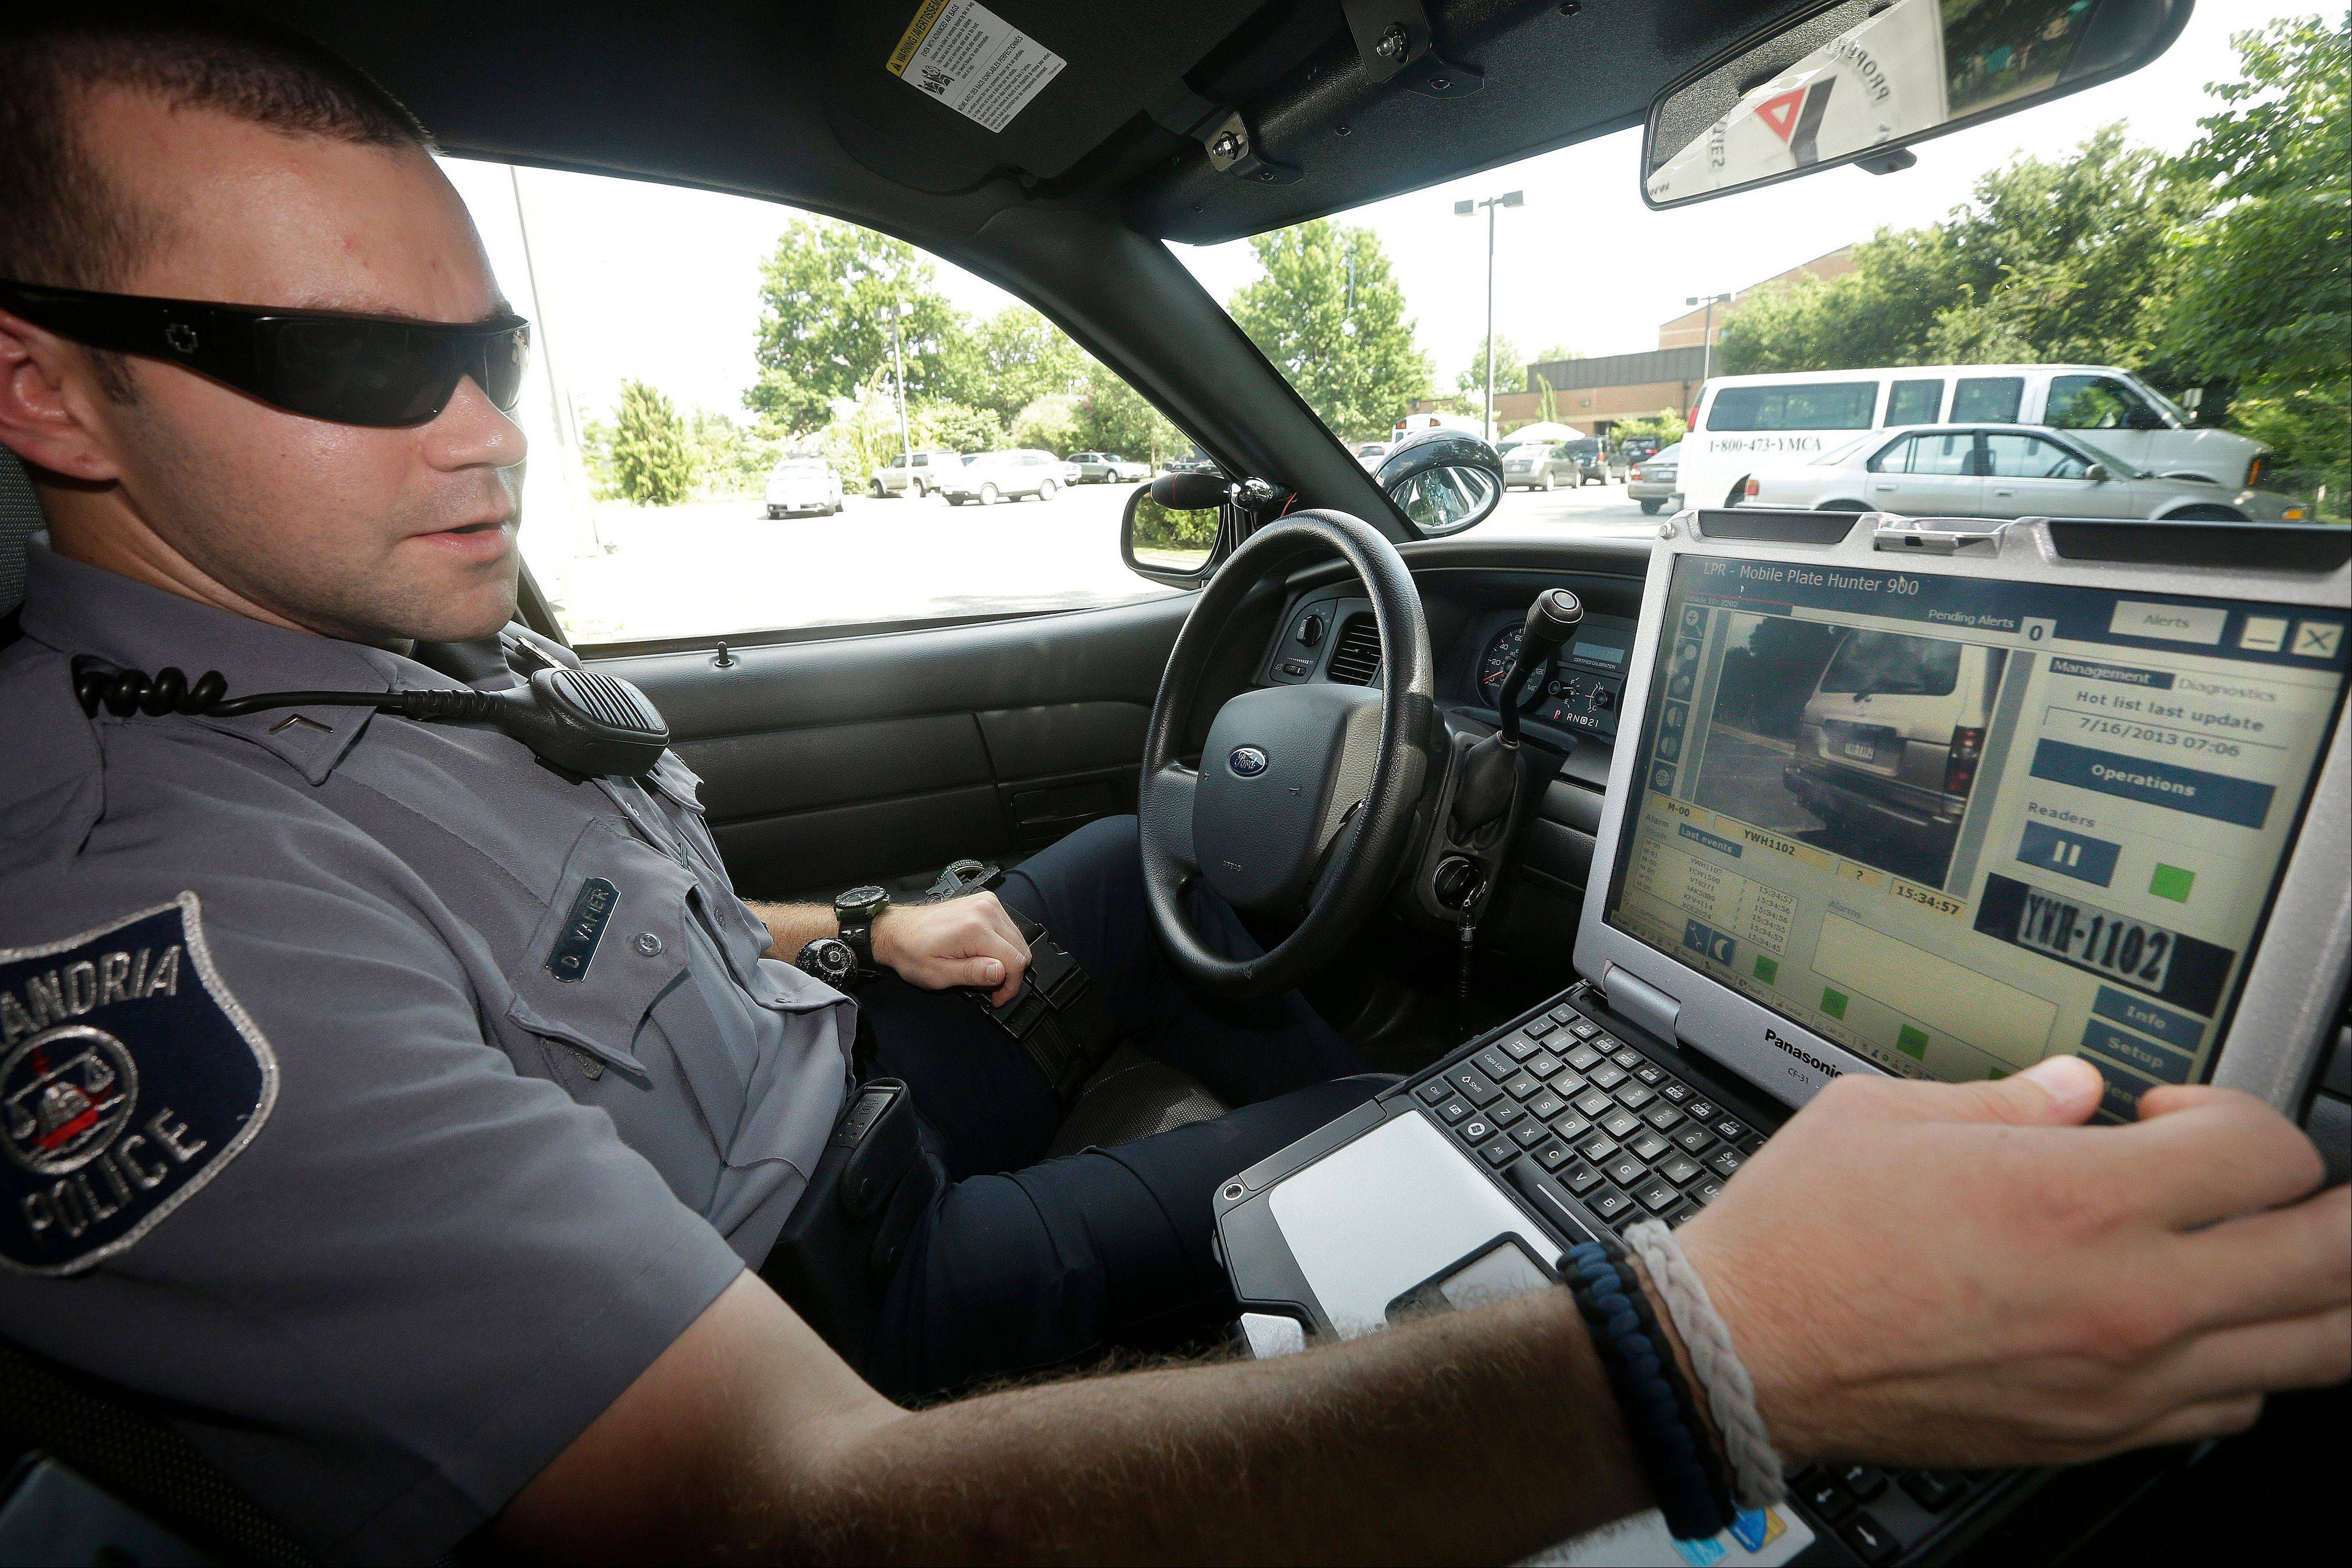 Local police departments across the country have amassed digital records of vehicles with a license plate using automated scanners. (AP Photo)